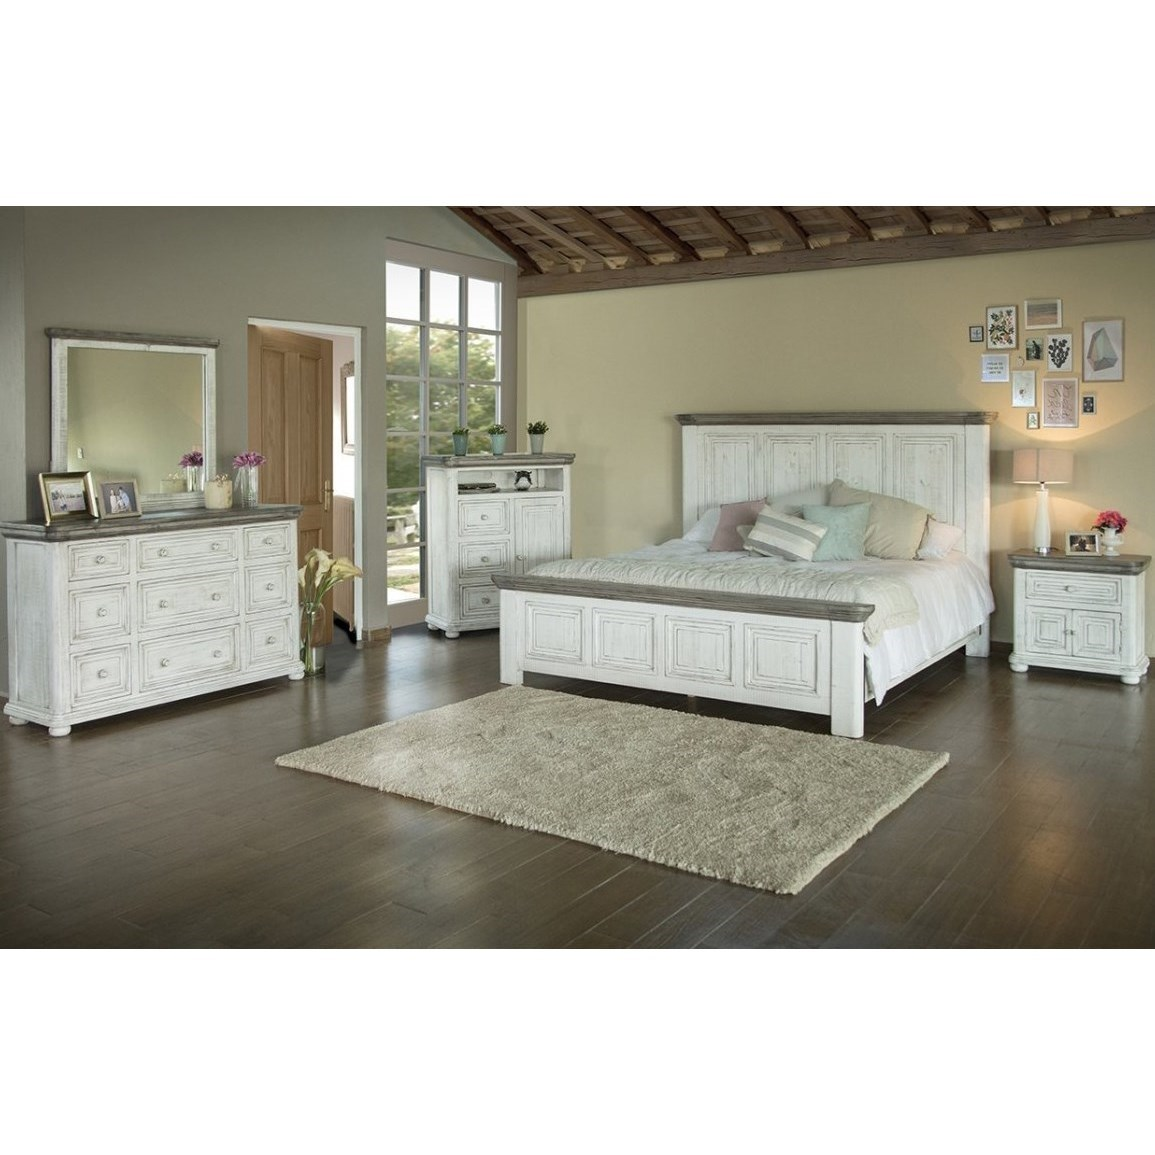 768 Luna King Bedroom Group by International Furniture Direct at Dunk & Bright Furniture